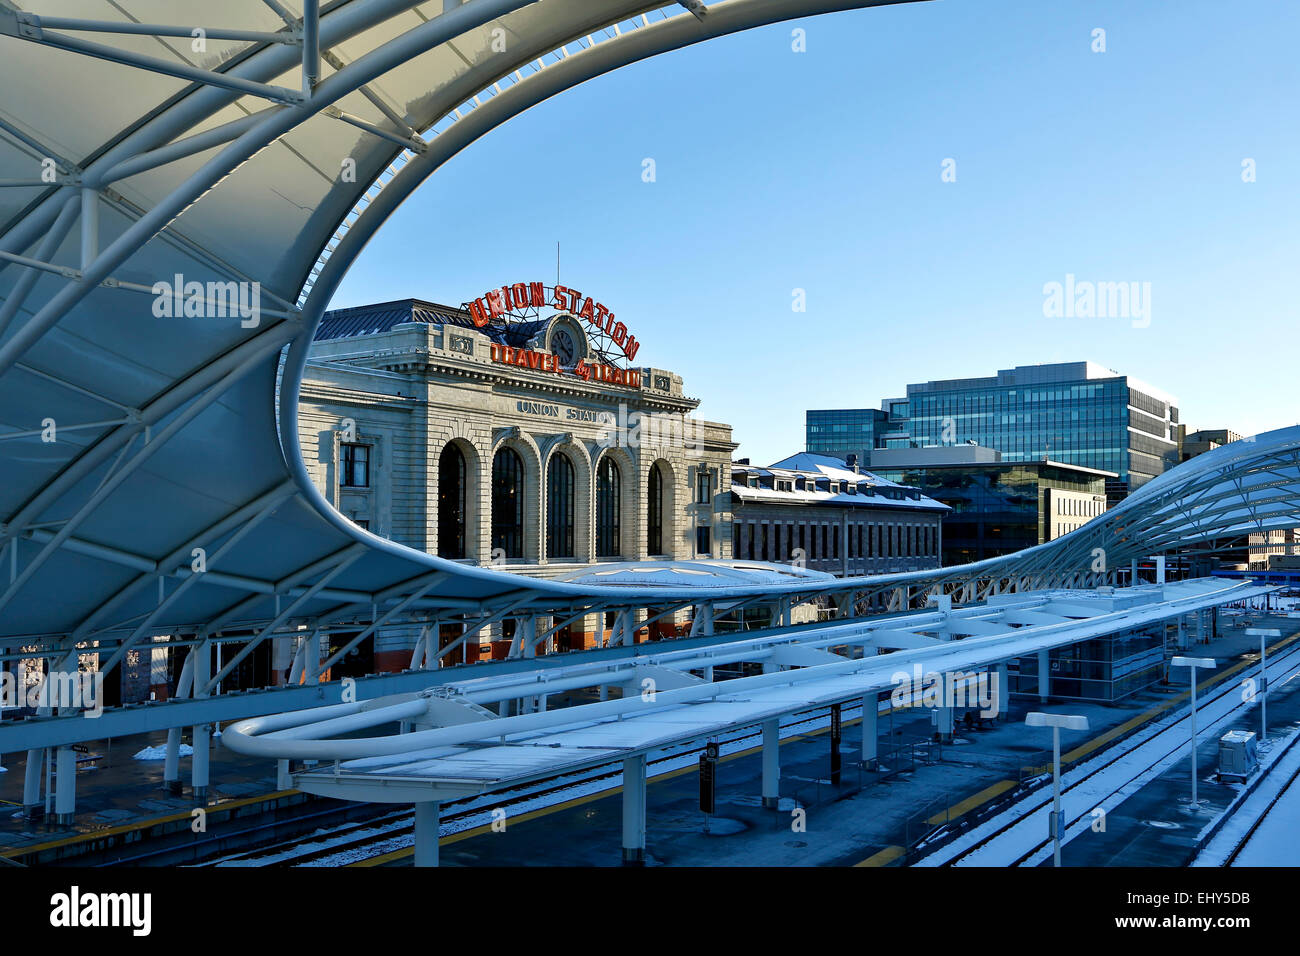 Union Station, Denver, Colorado USA Stock Photo